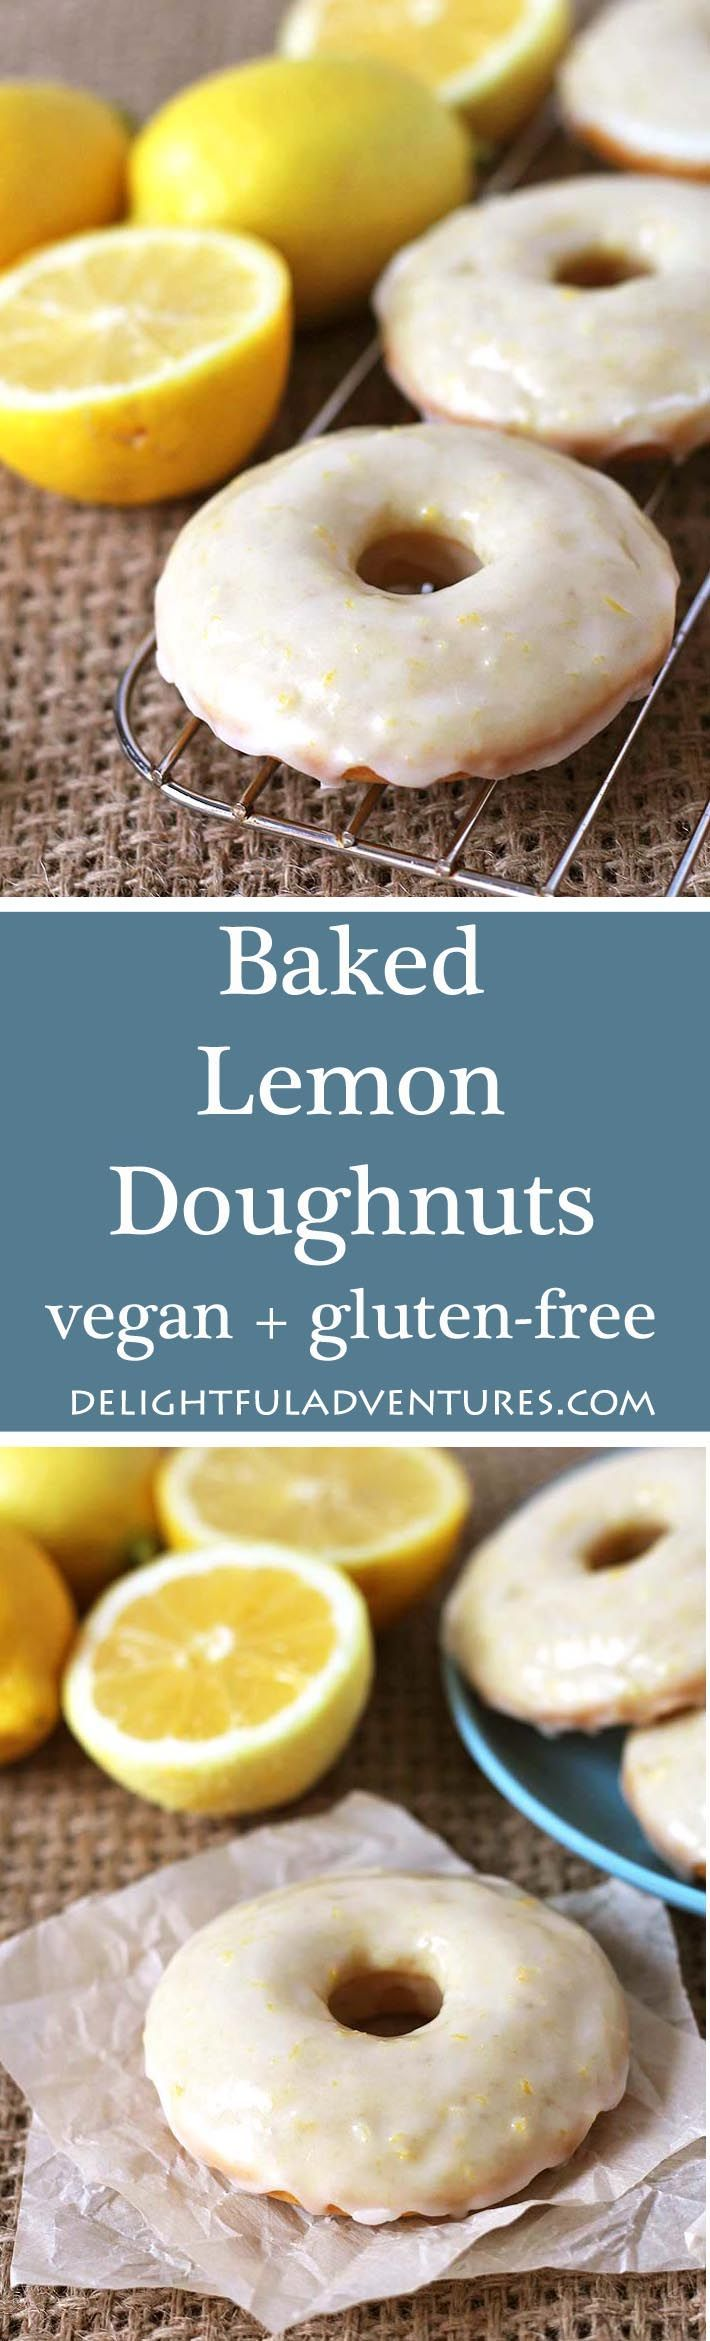 Family and friends will be asking for more when you make them these sweet, tangy, vegan baked lemon doughnuts with lemon glaze! Recipe contains a gluten free option! via @delighfuladv